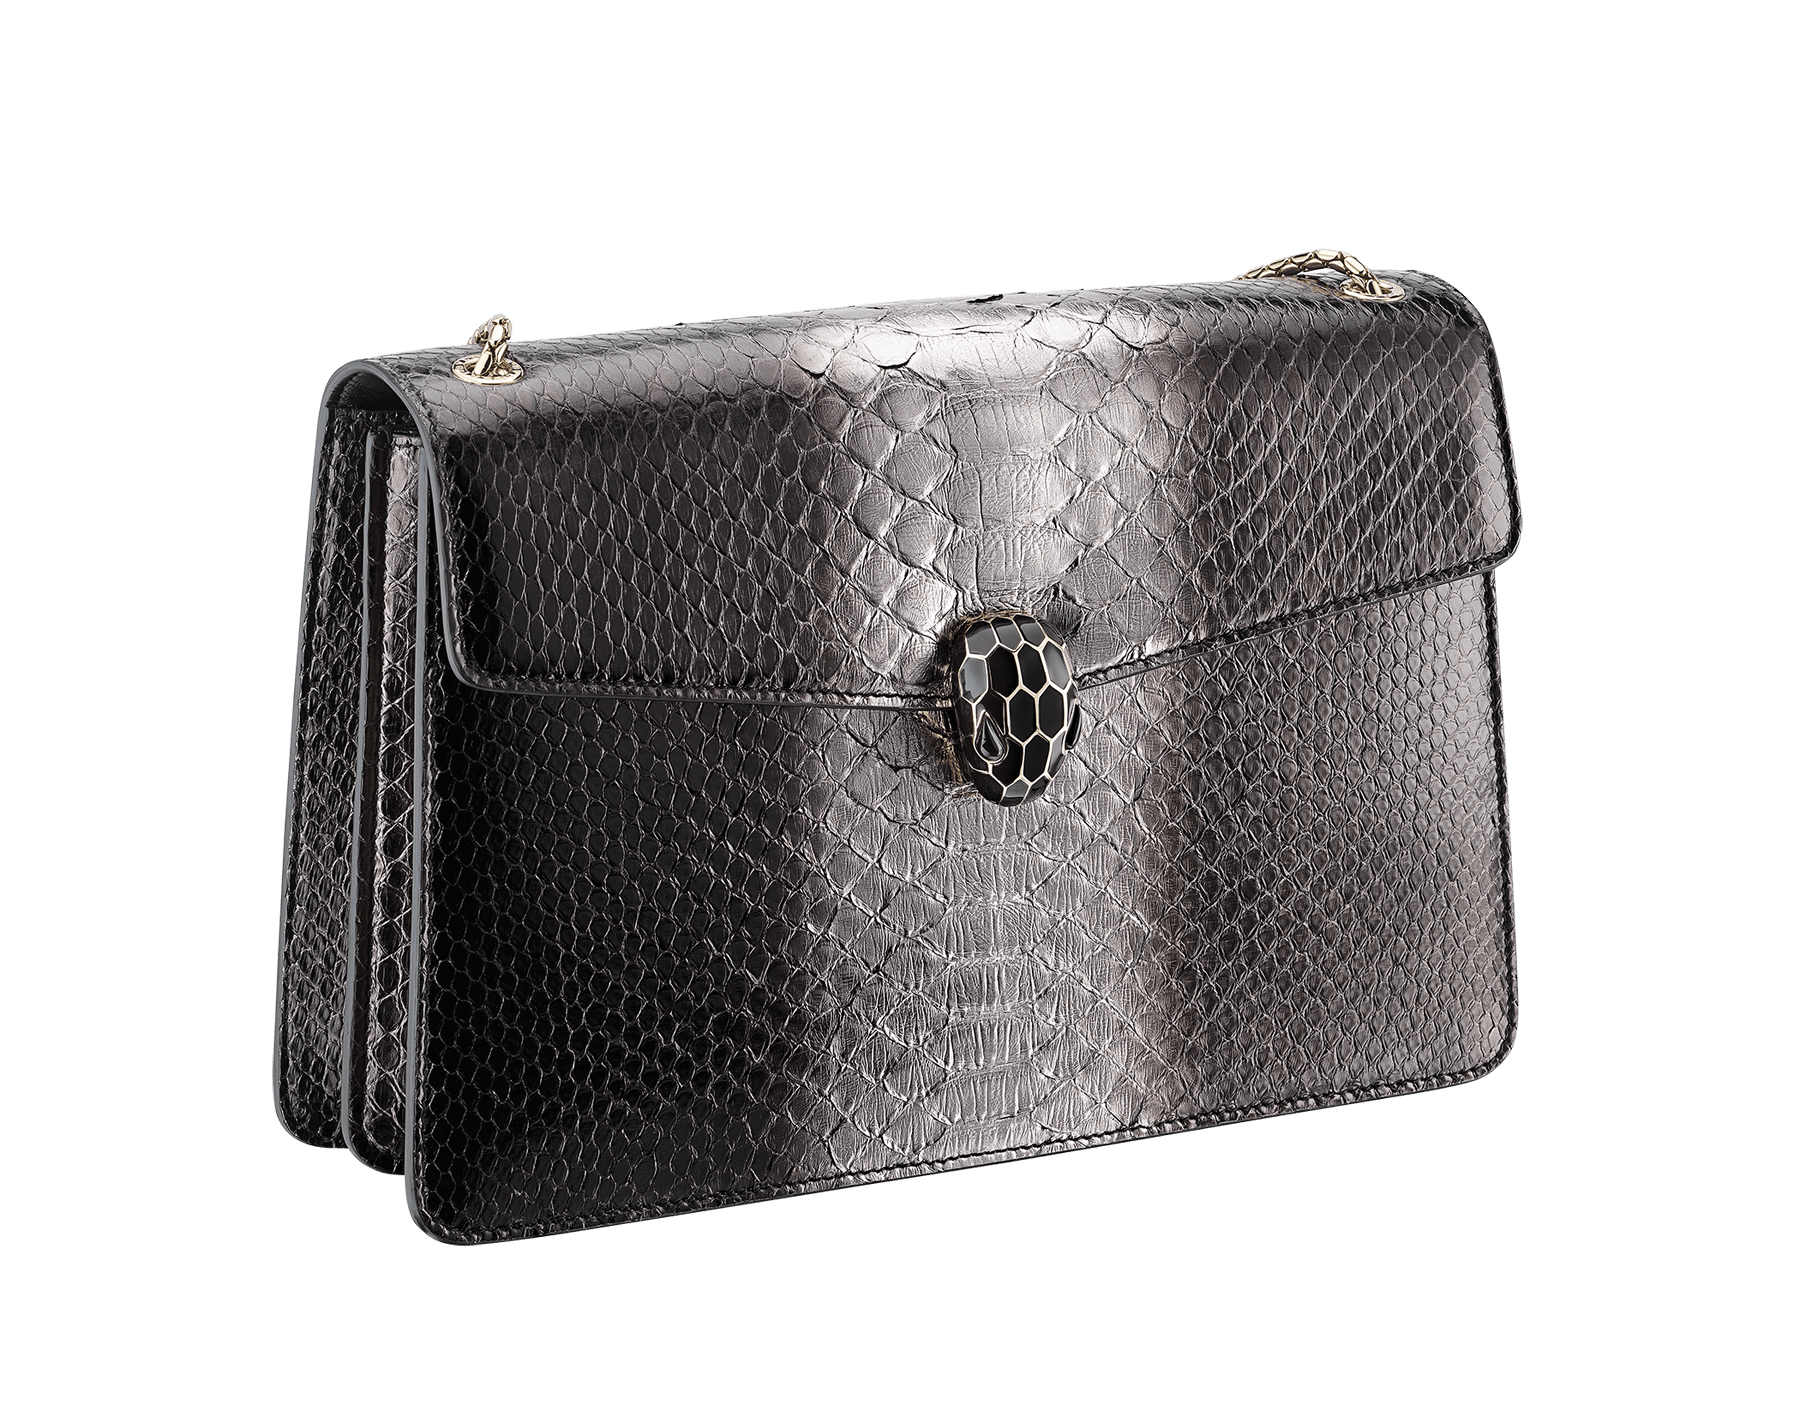 Serpenti Forever shoulder bag in black and silver shaded python skin. Snakehead closure in light gold plated brass decorated with black enamel, and black onyx eyes. 288494 image 2